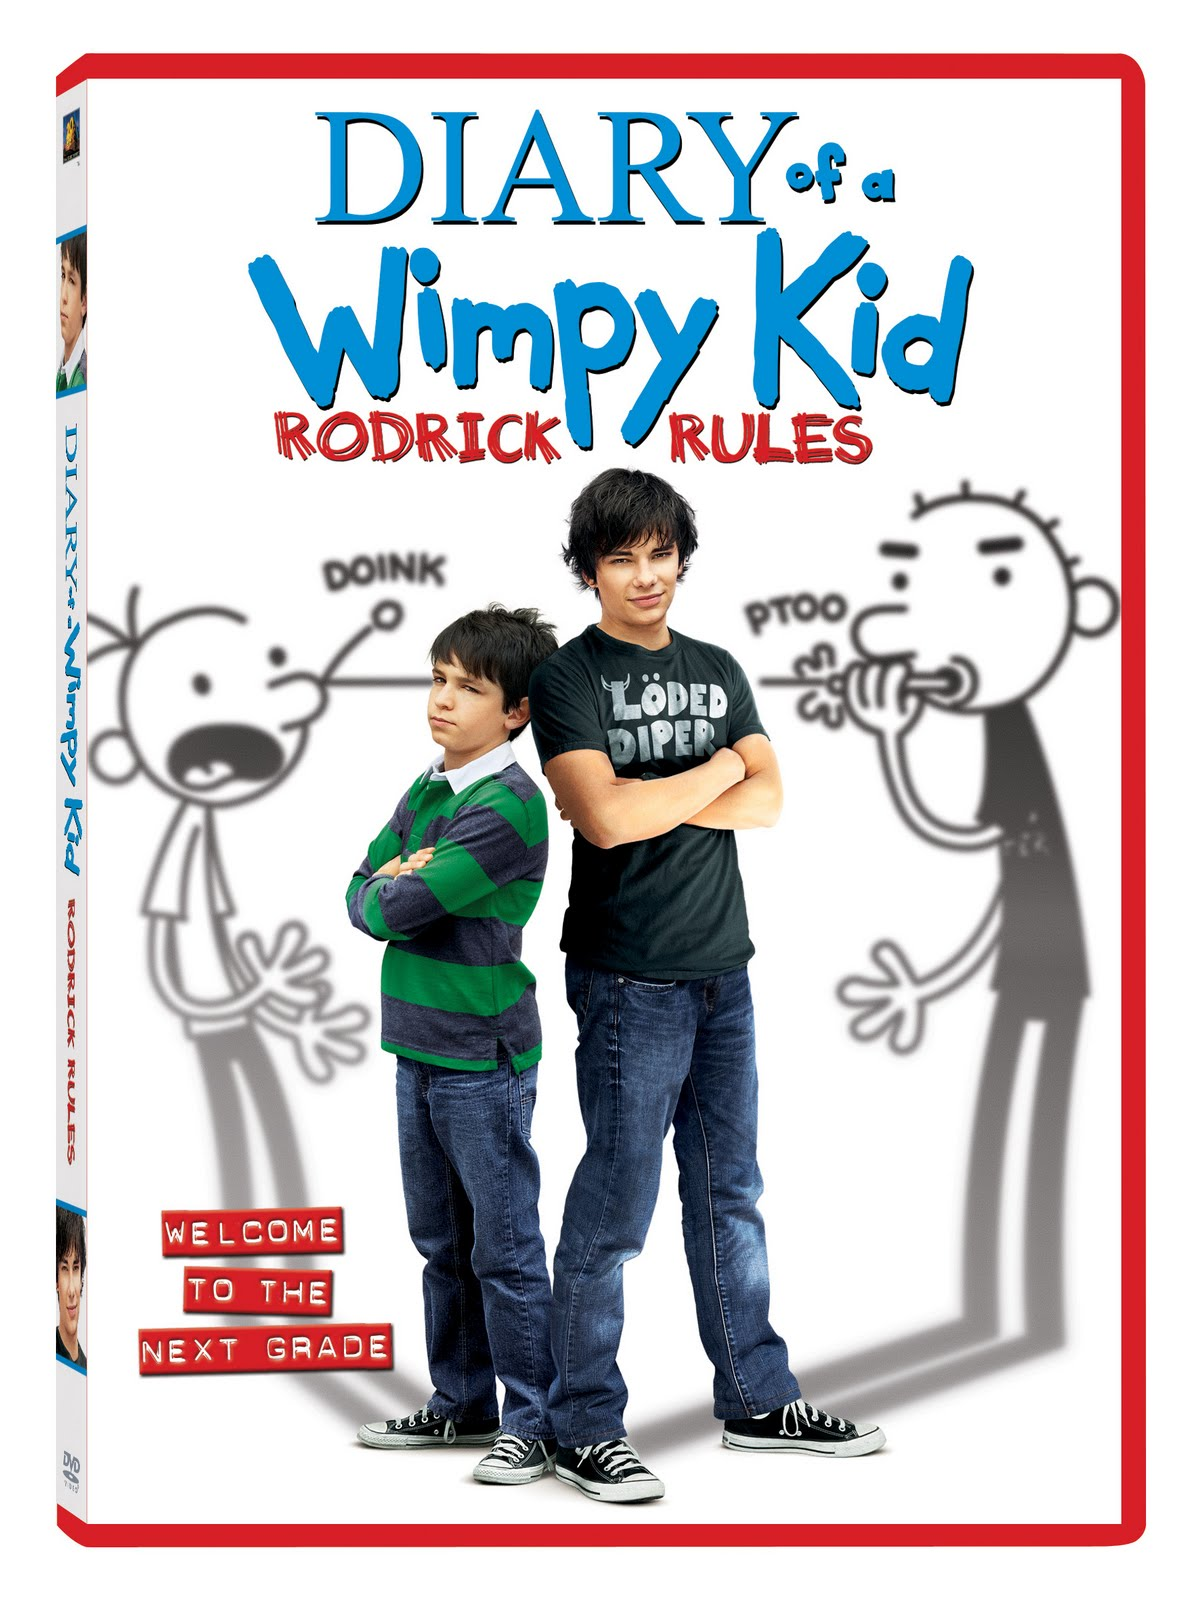 Stacy Tilton Reviews: Diary of a Wimpy Kid: RODRICK RULES DVD